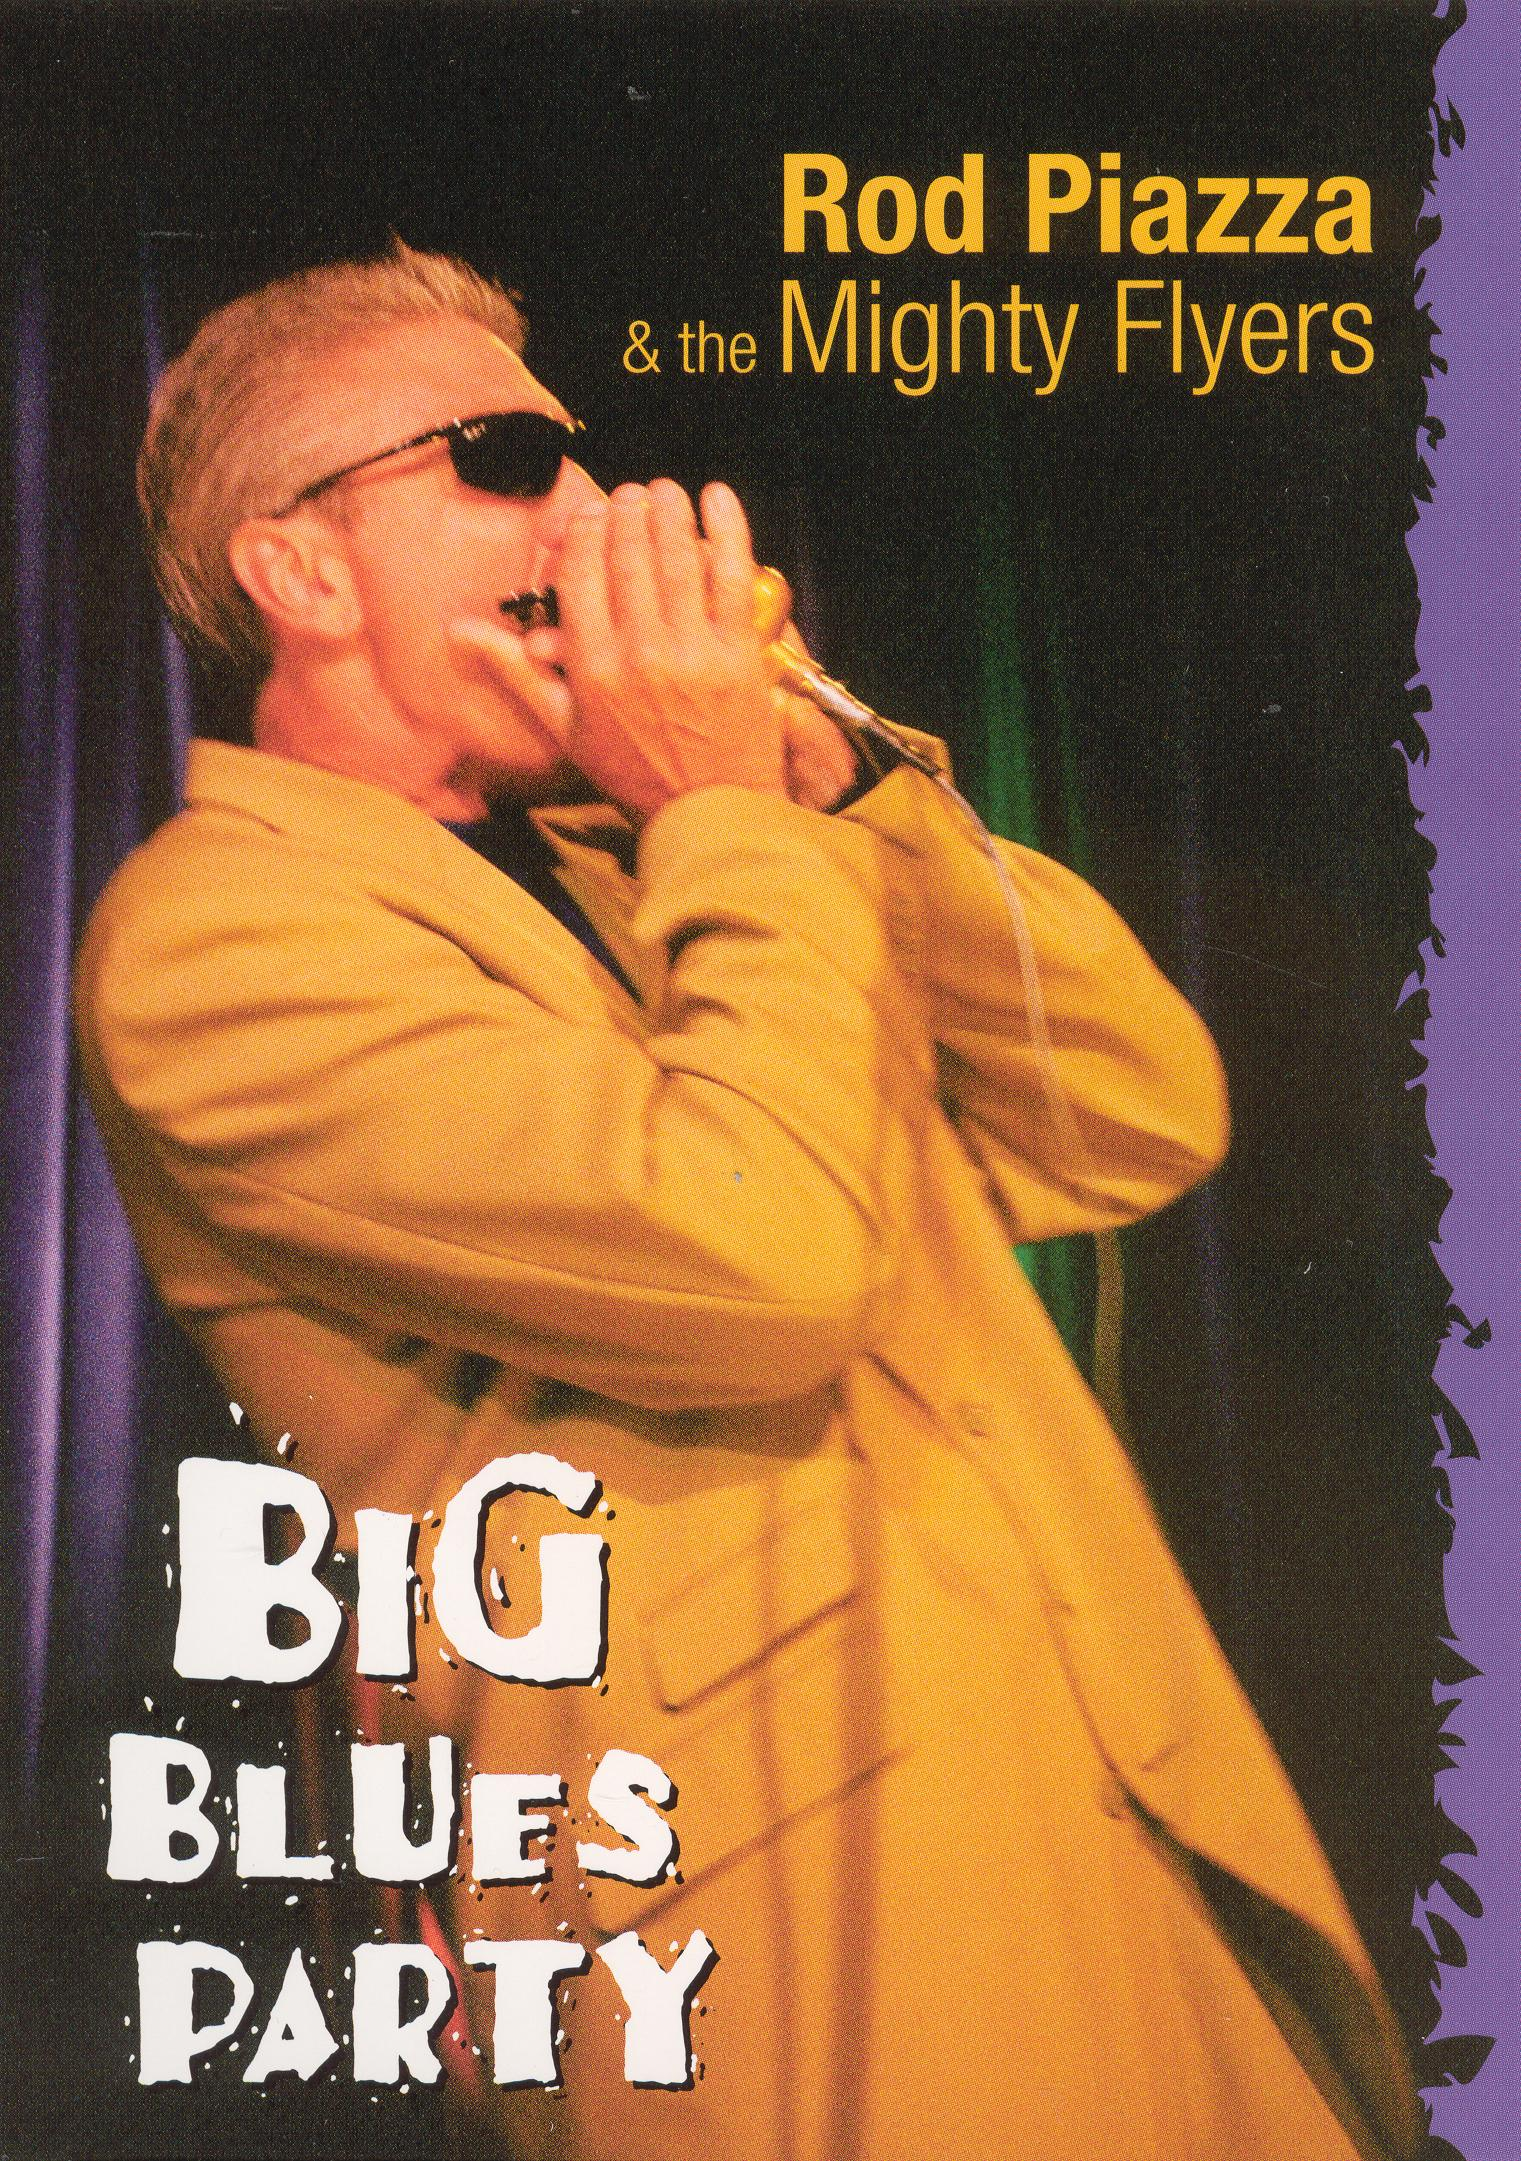 Rod Piazza and the Mighty Flyers: Big Blues Party